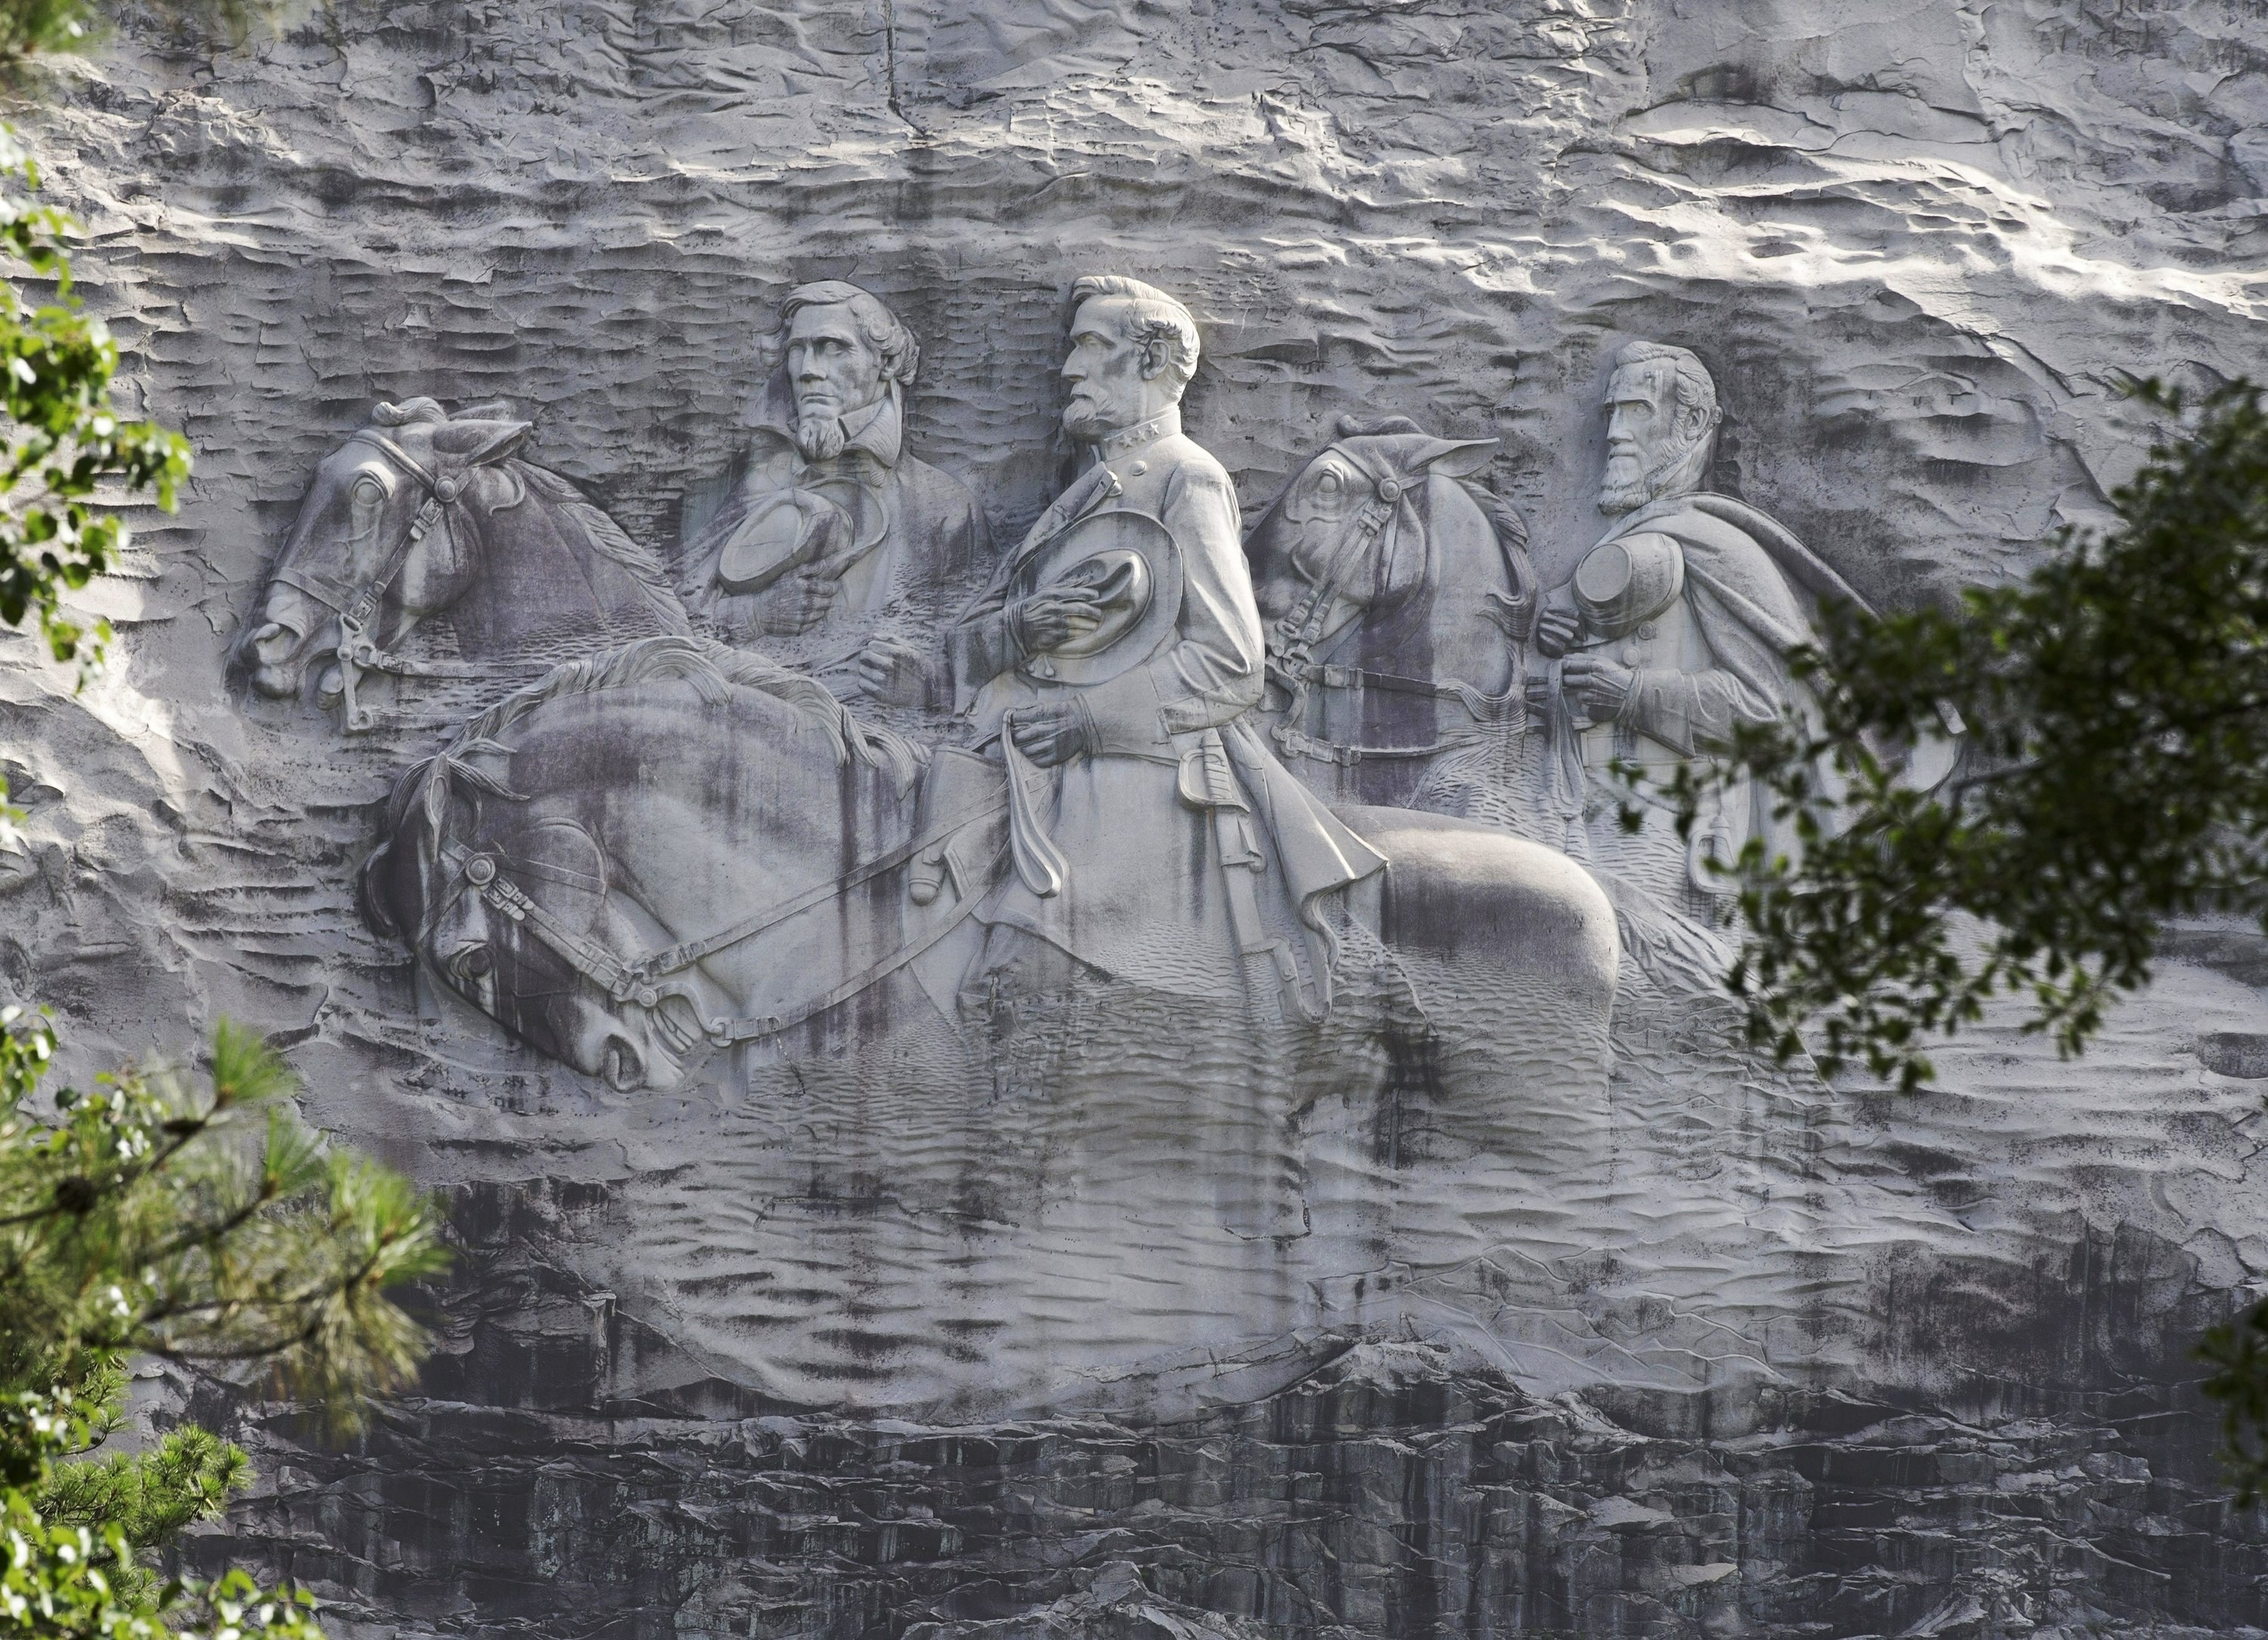 Armed protesters march through Georgia's Stone Mountain Park